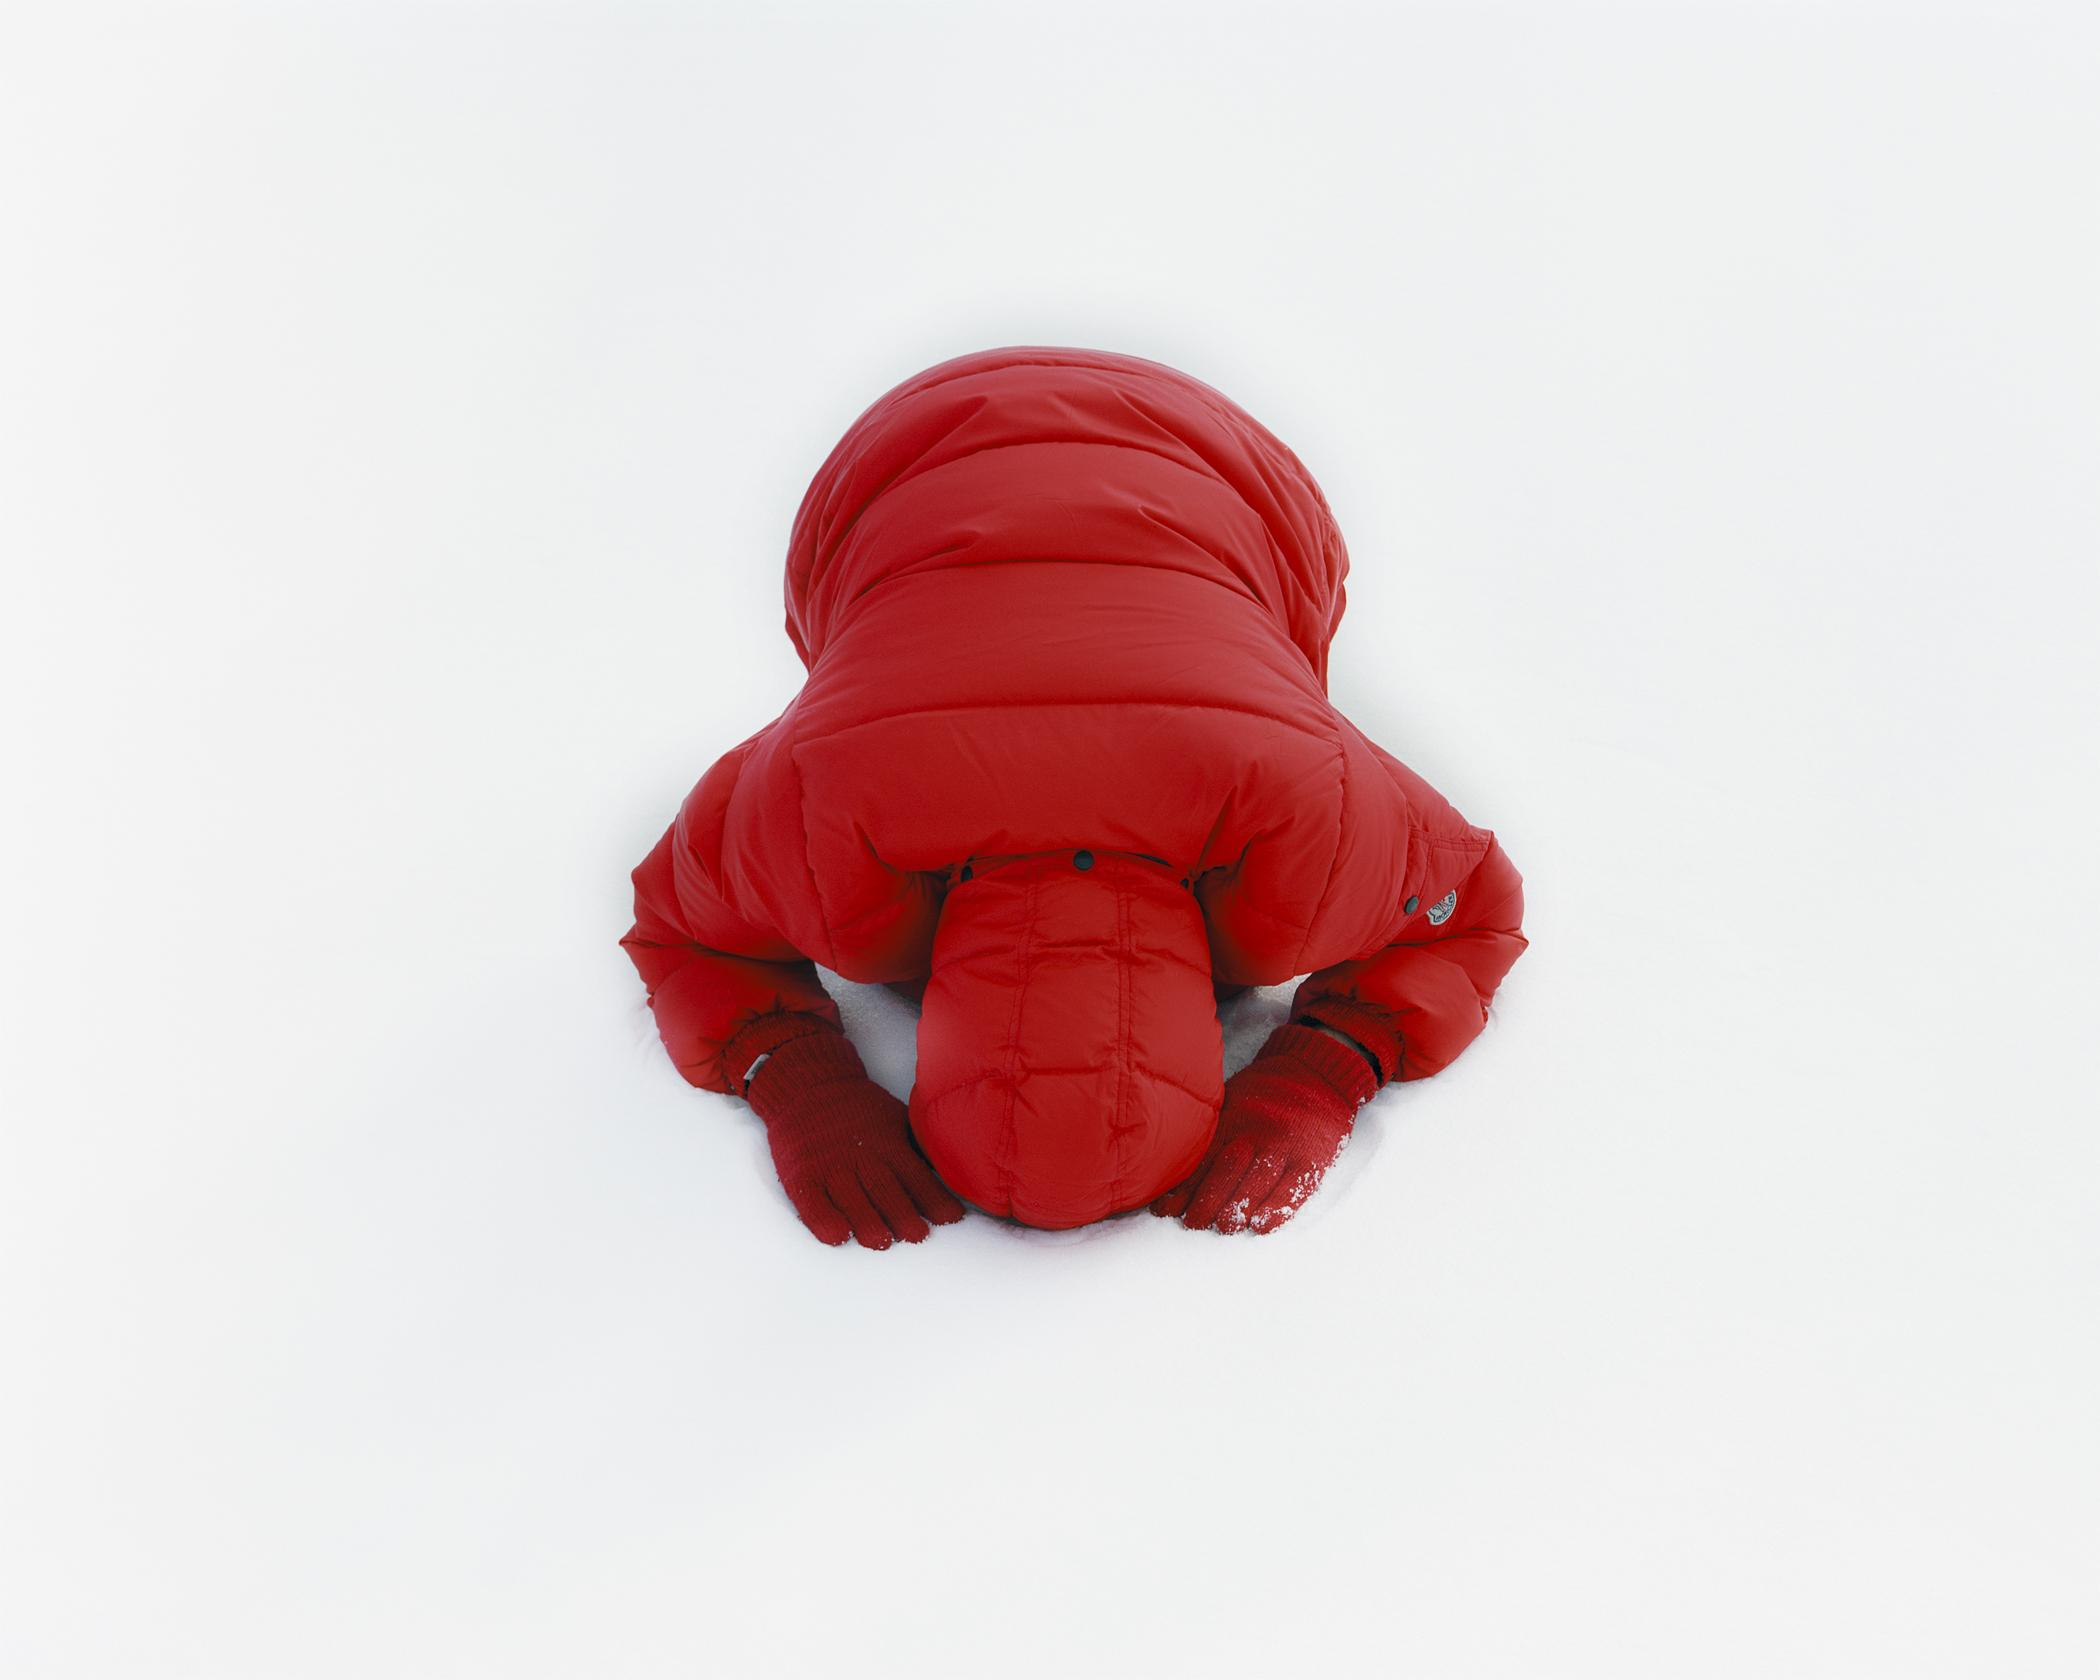 A person in a red puffy coat and red gloves bows on a snow-covered surface. Their face is not seen.